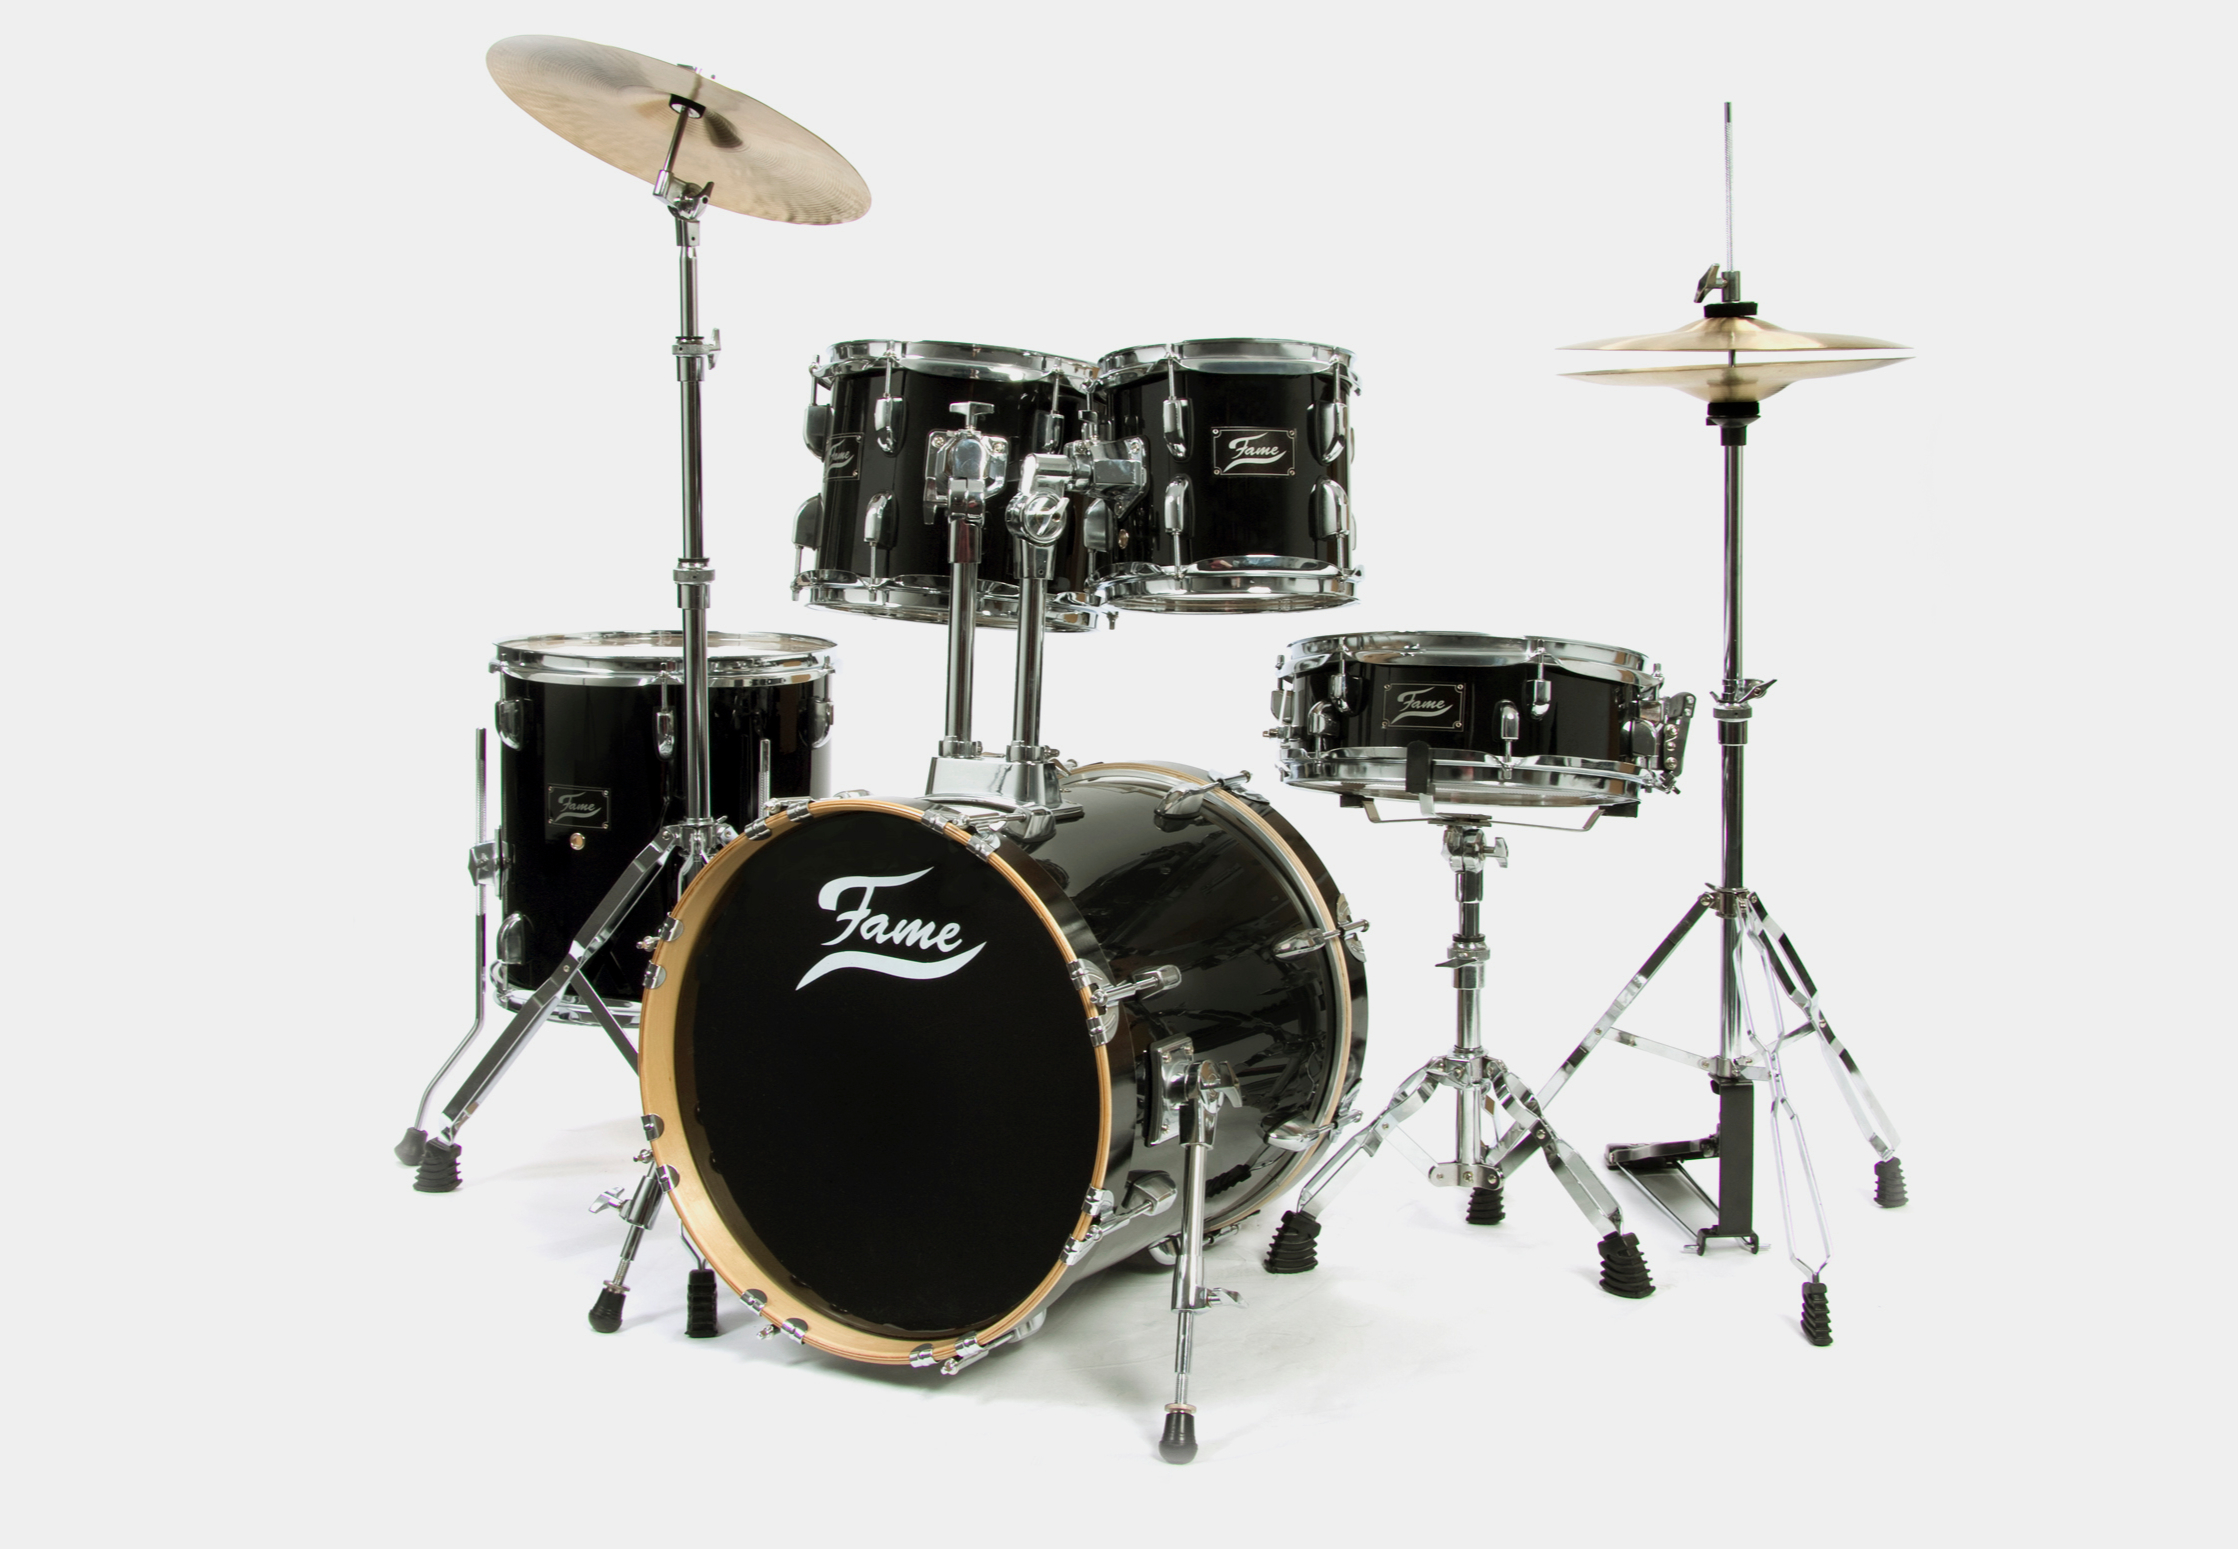 Fame Maple Standard Jungle Drumset